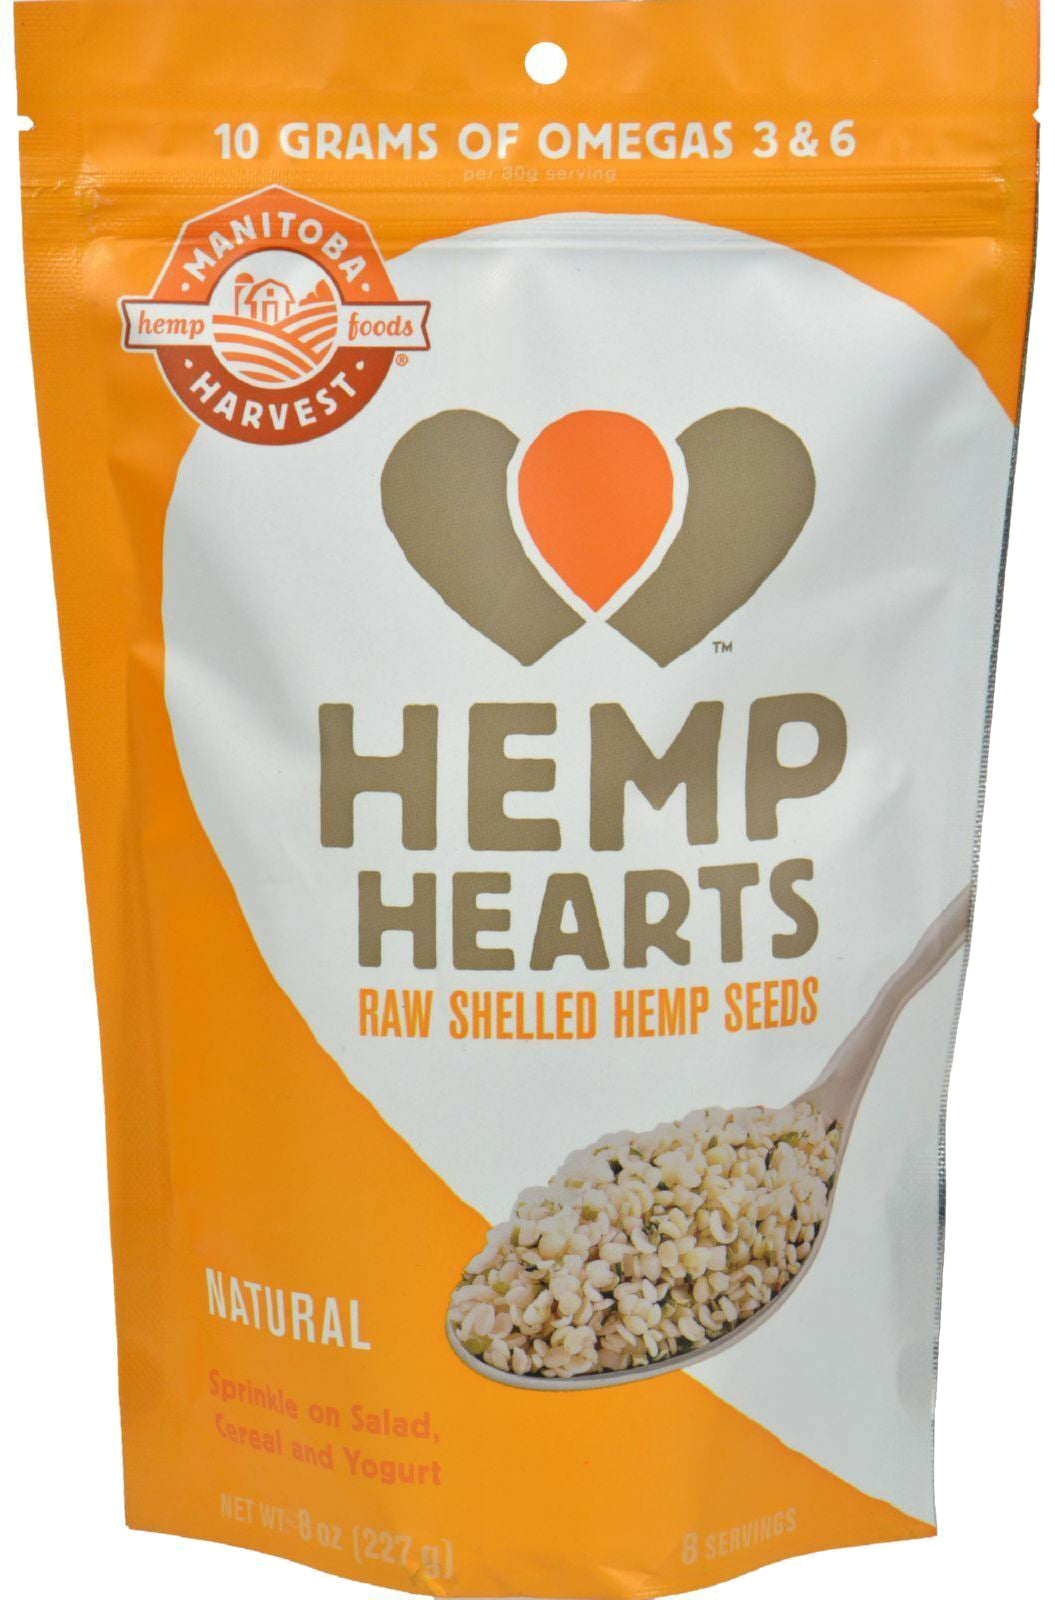 Hemp Hearts Raw Shelled Hemp Seeds, Natural Flavor, 8 Oz (227 g) Seeds